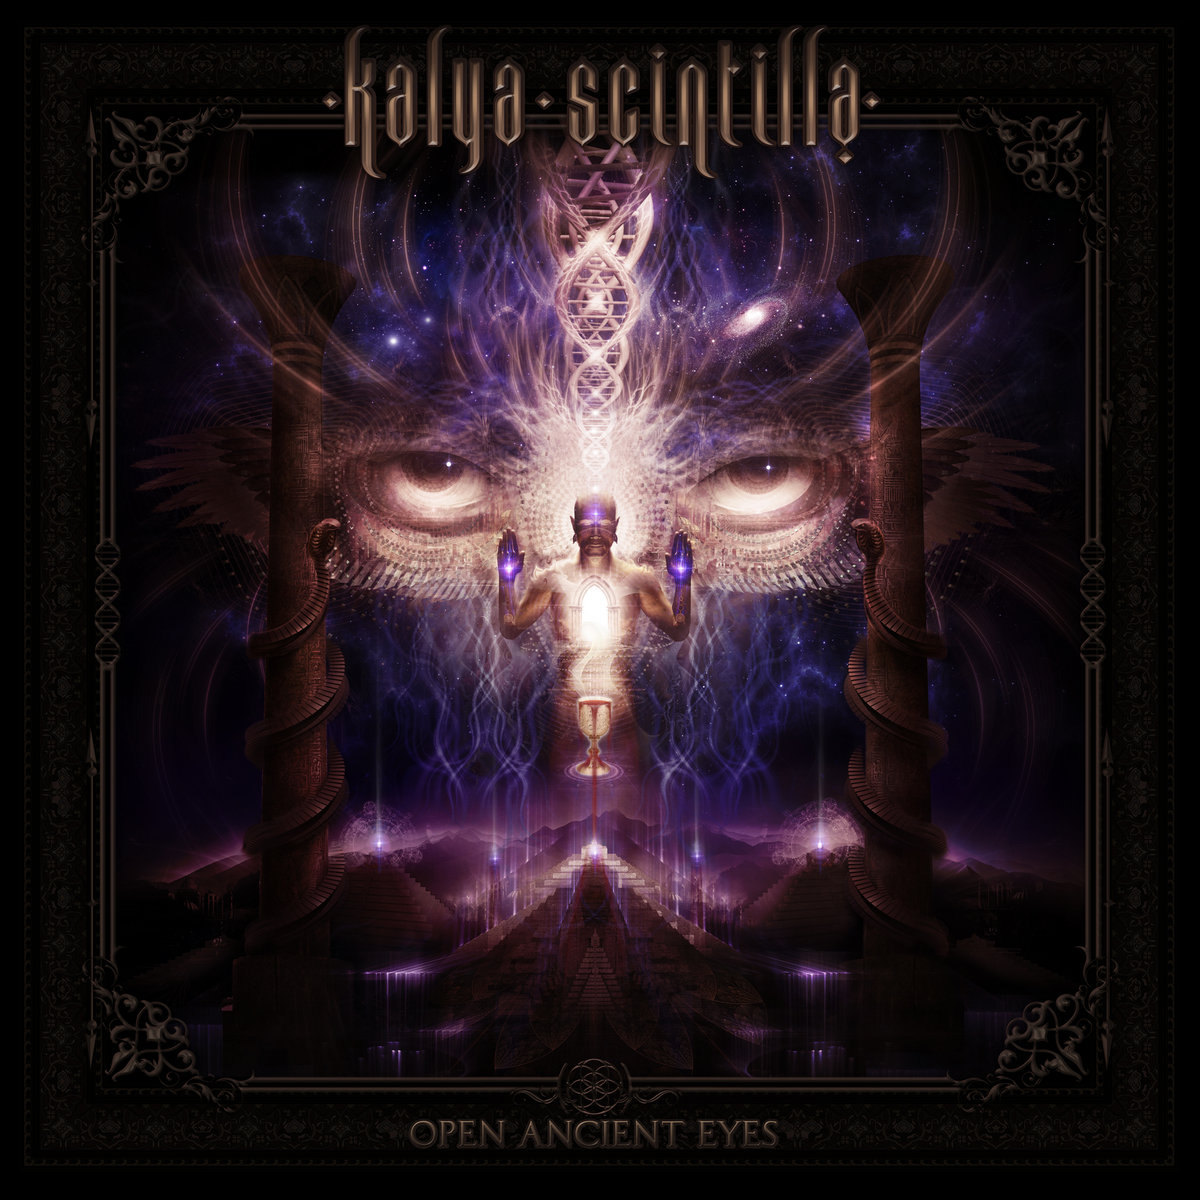 Kalya Scintilla - Condor and Eagle @ 'Open Ancient Eyes' album (432hz, electronic)